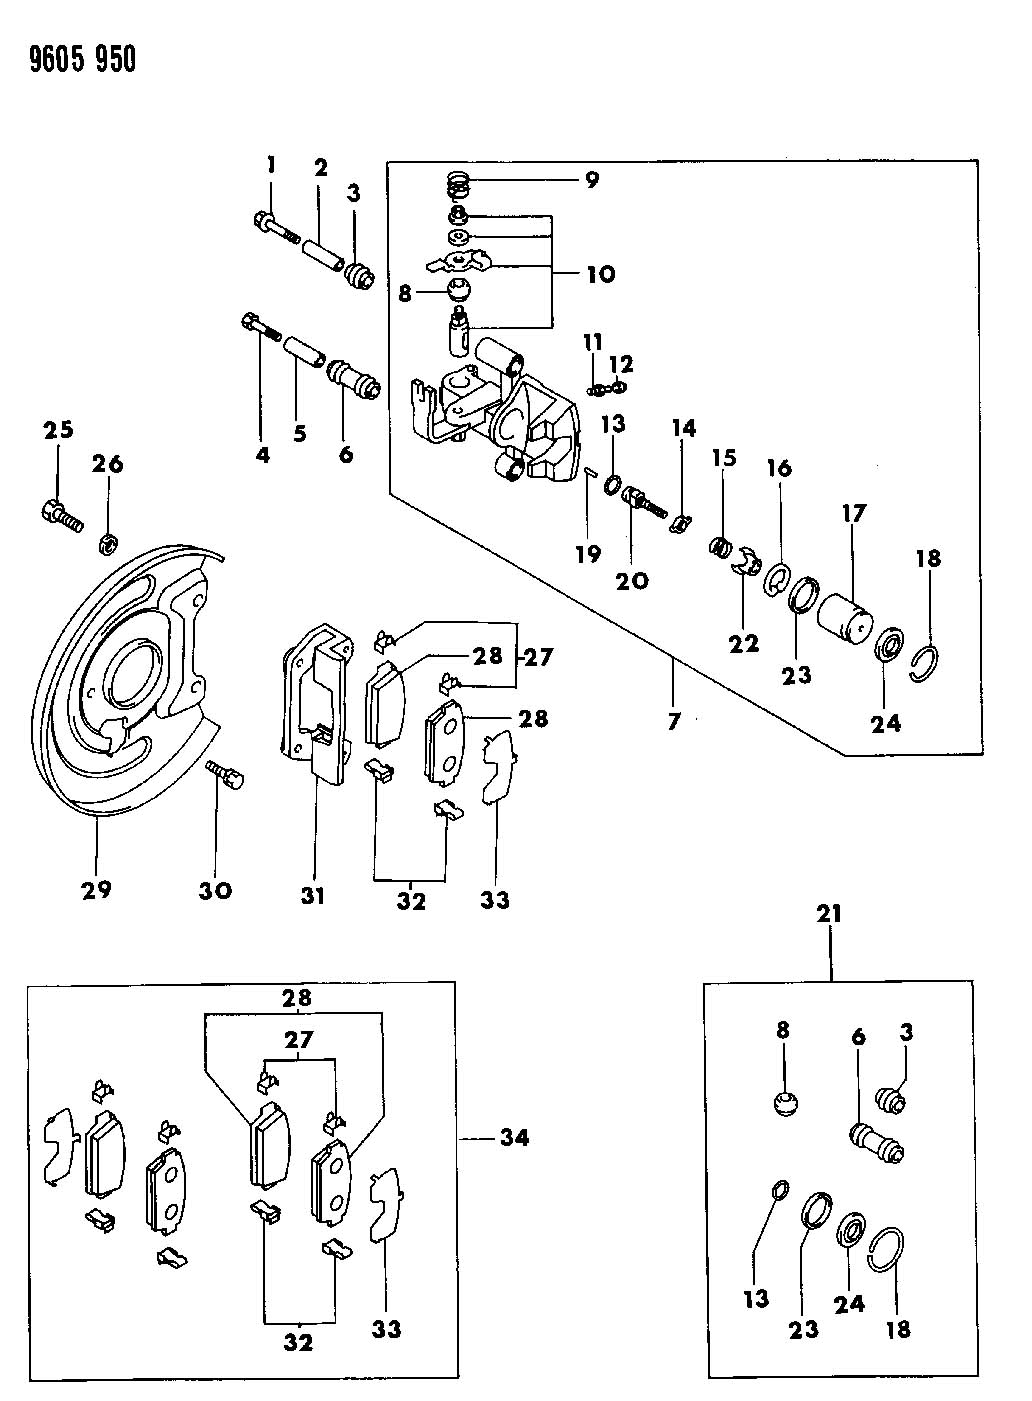 Service manual [1992 Plymouth Laser How To Adjust Parking